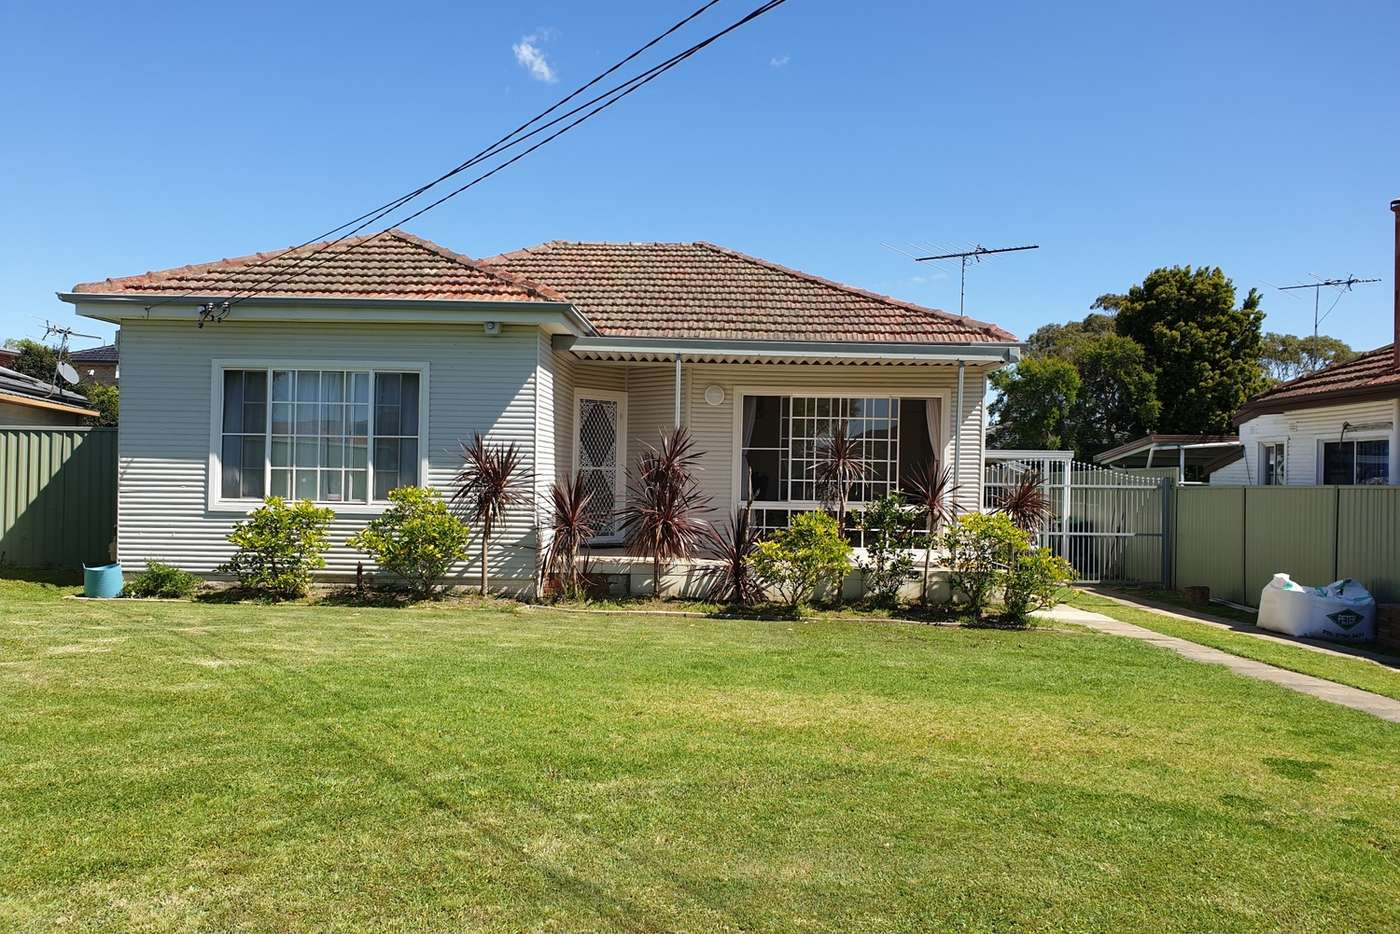 Main view of Homely house listing, 23 Nella Street, Padstow NSW 2211